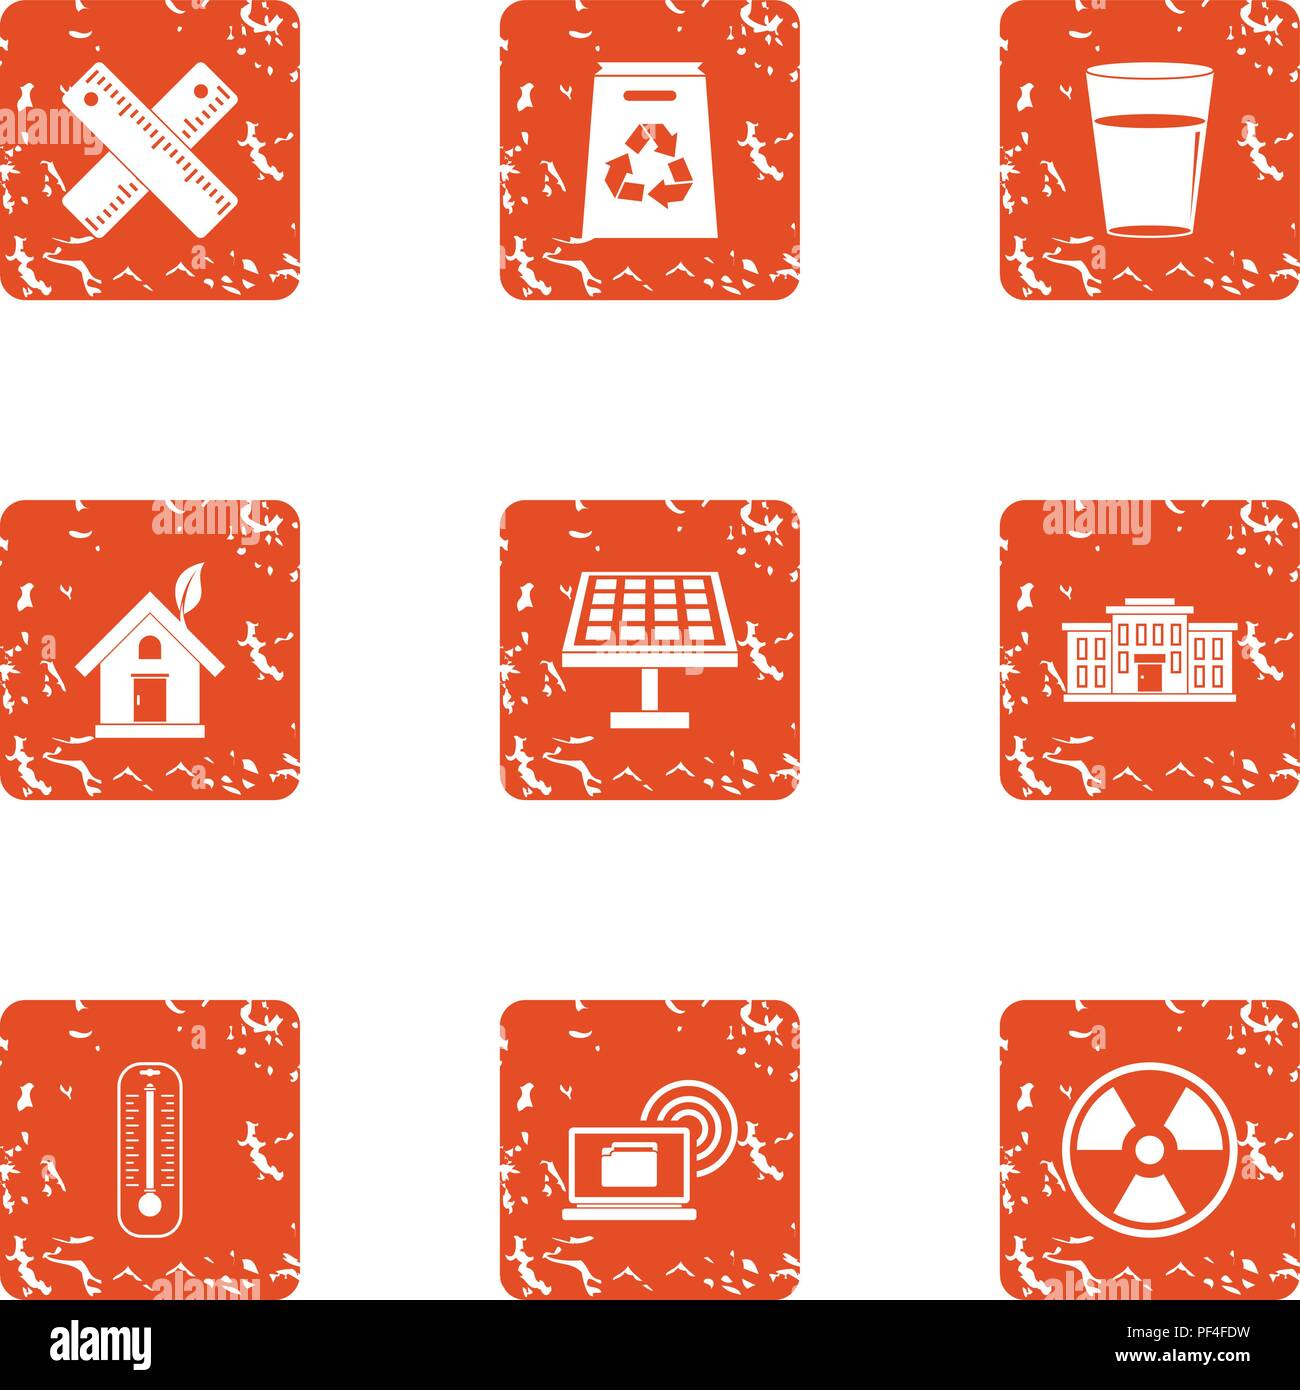 Pollution icons set, grunge style - Stock Vector